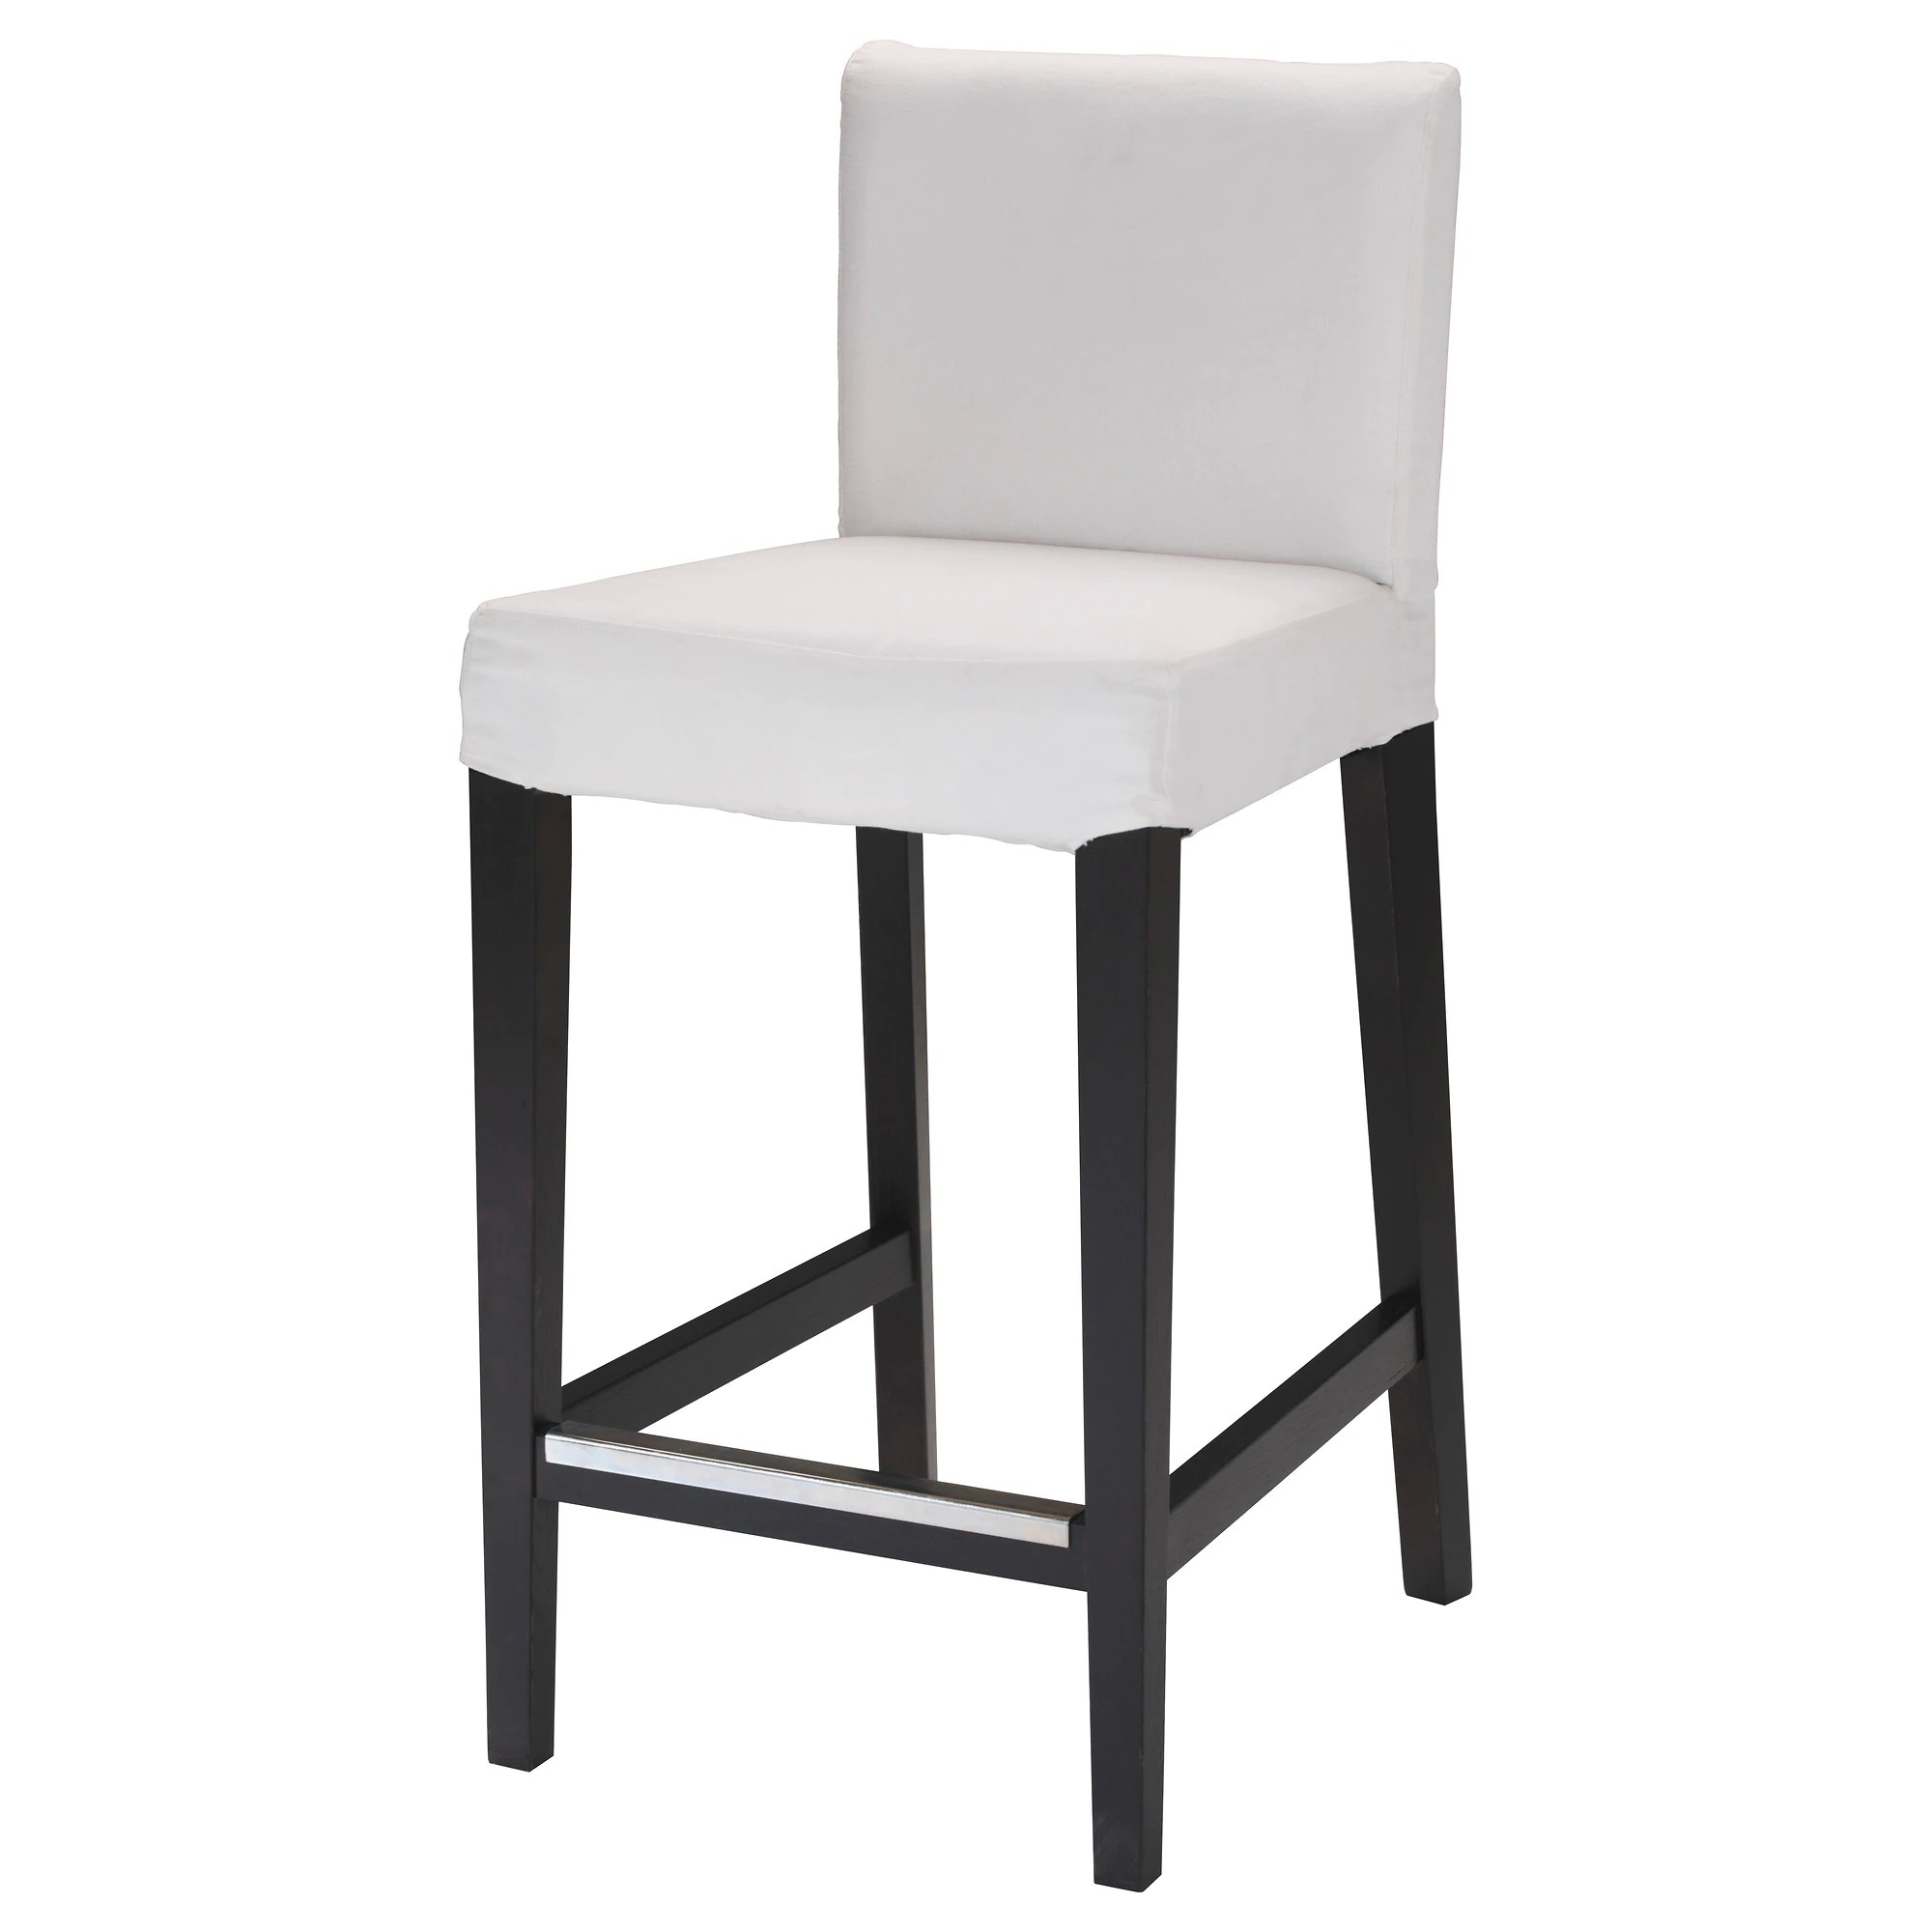 Bar Stool Chairs Henriksdal Bar Stool With Backrest Frame Dark Brown